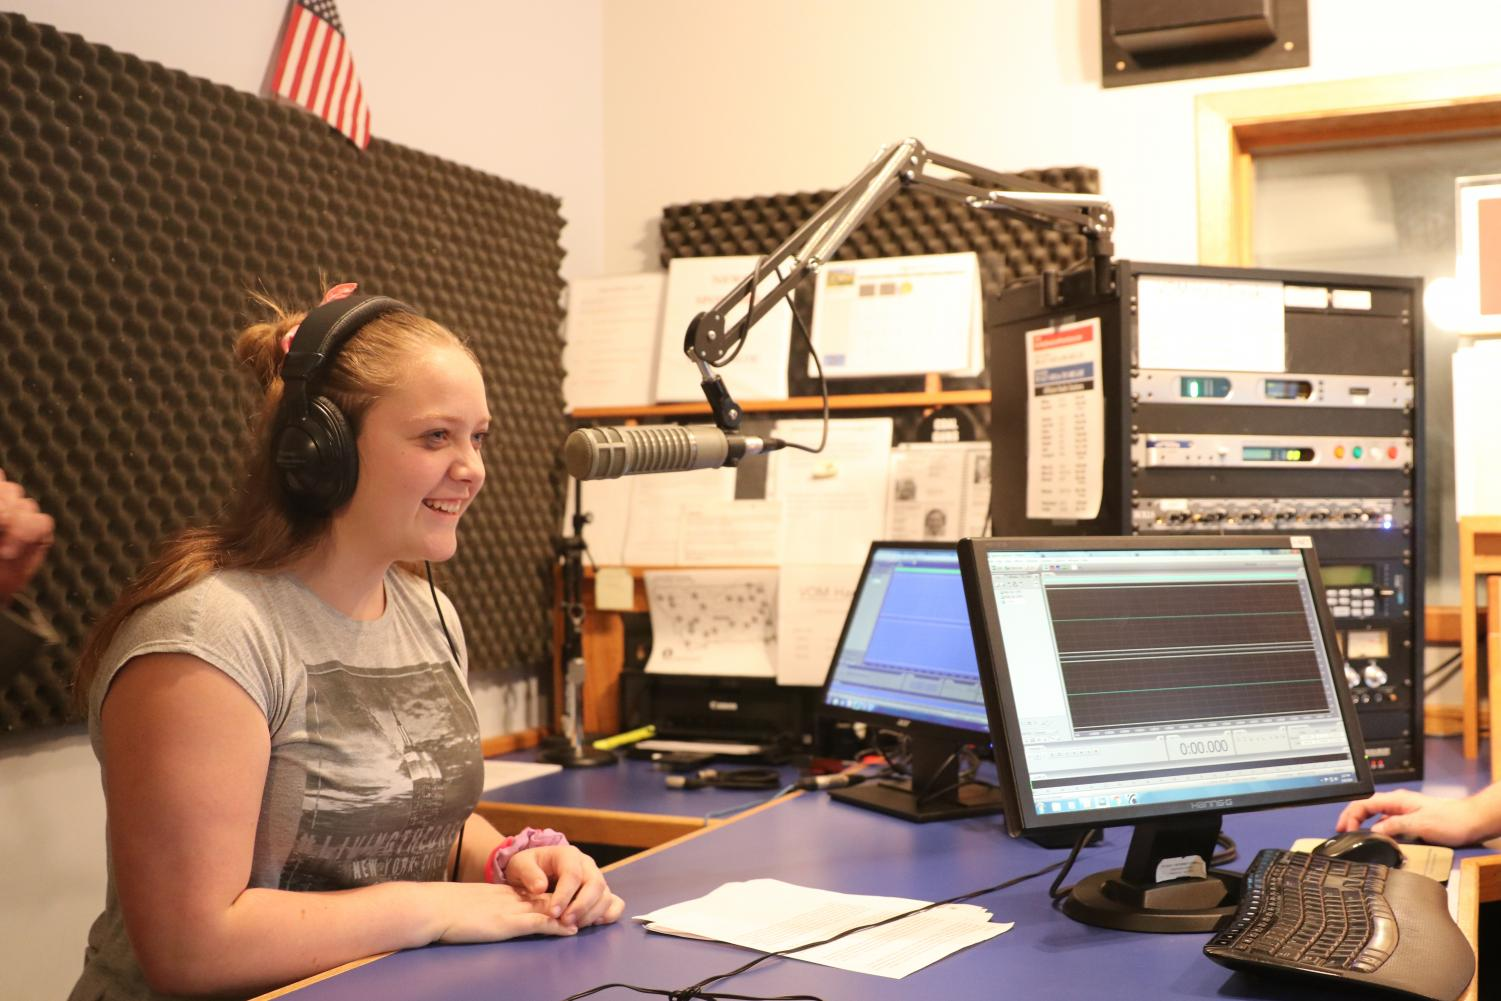 1.%09+Park+High+student+Desiree+Swanson+learns+how+to+interview+someone+on-air+while+visiting+the+Northern+News+Network+station+in+Billings+Thursday.